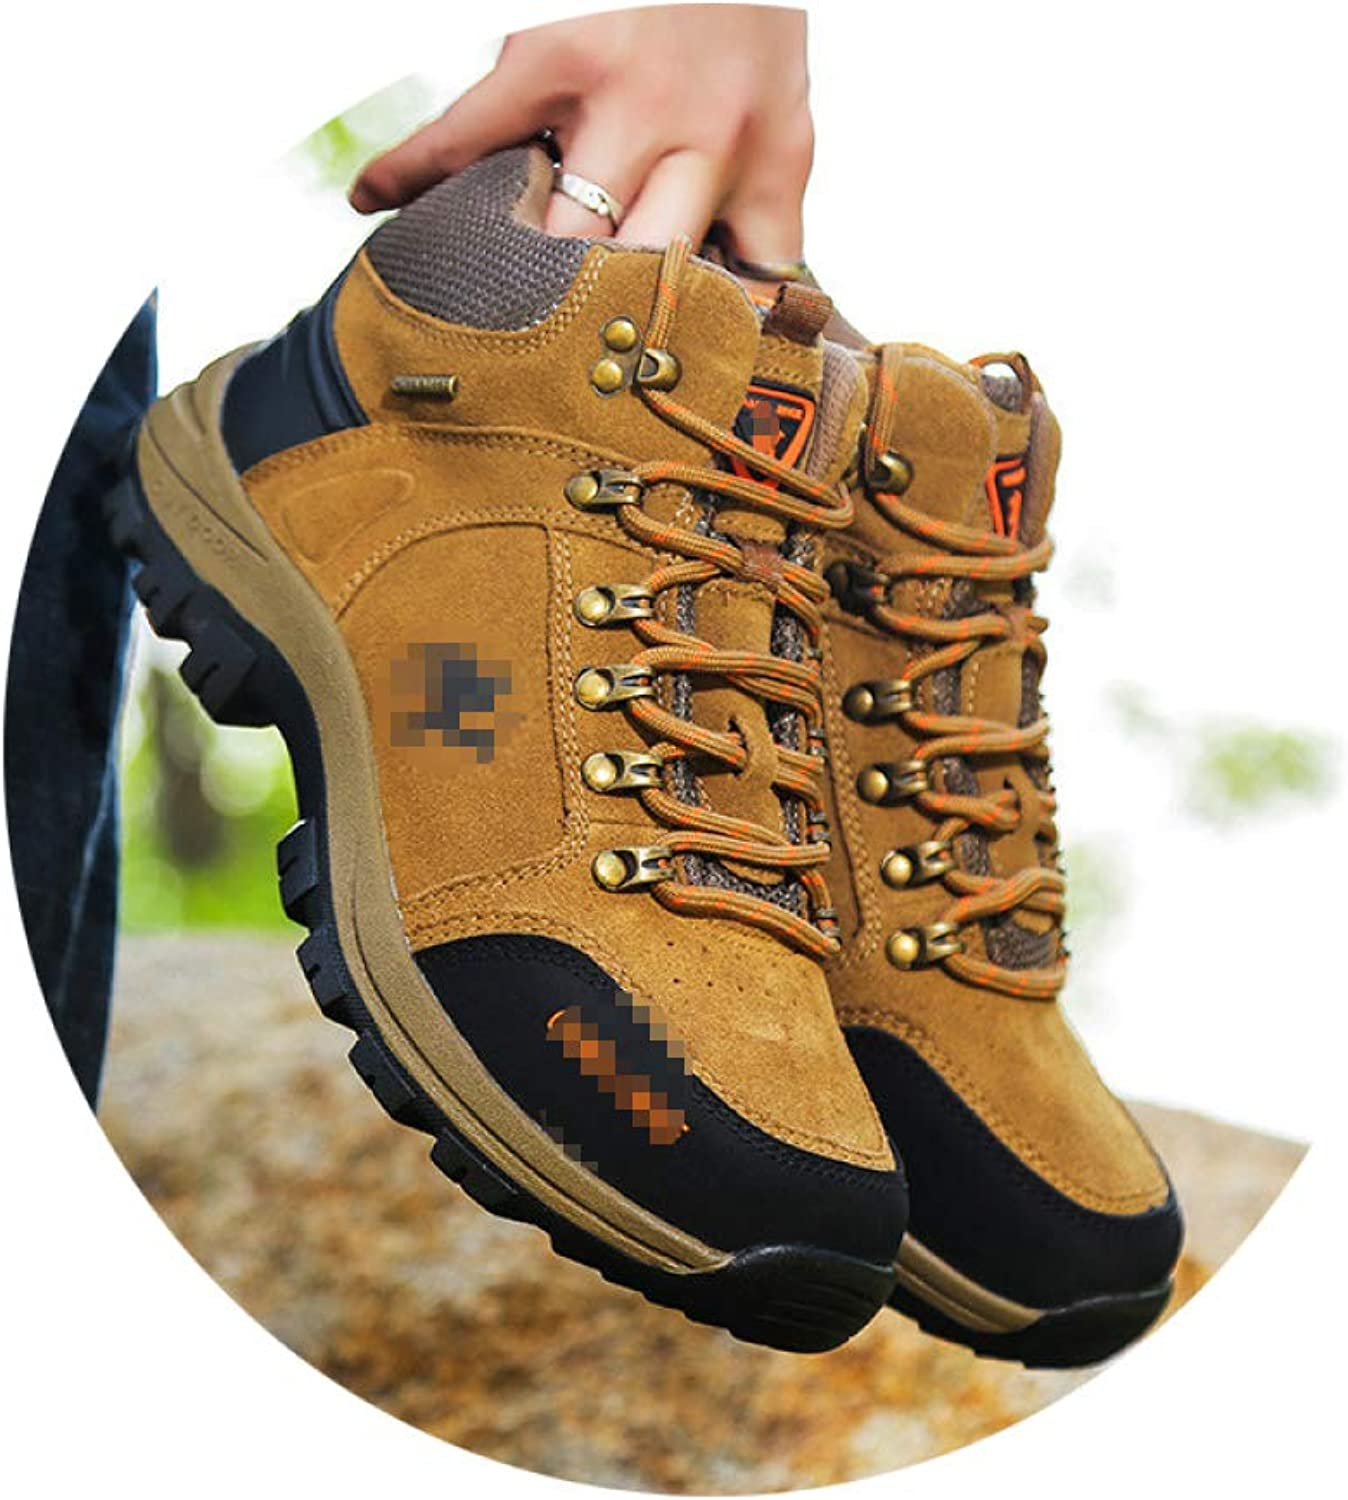 SHOES Winter High-Top Outdoor Cotton, Warm And Velvet Hiking, Fashion Trend Walking, Men'S